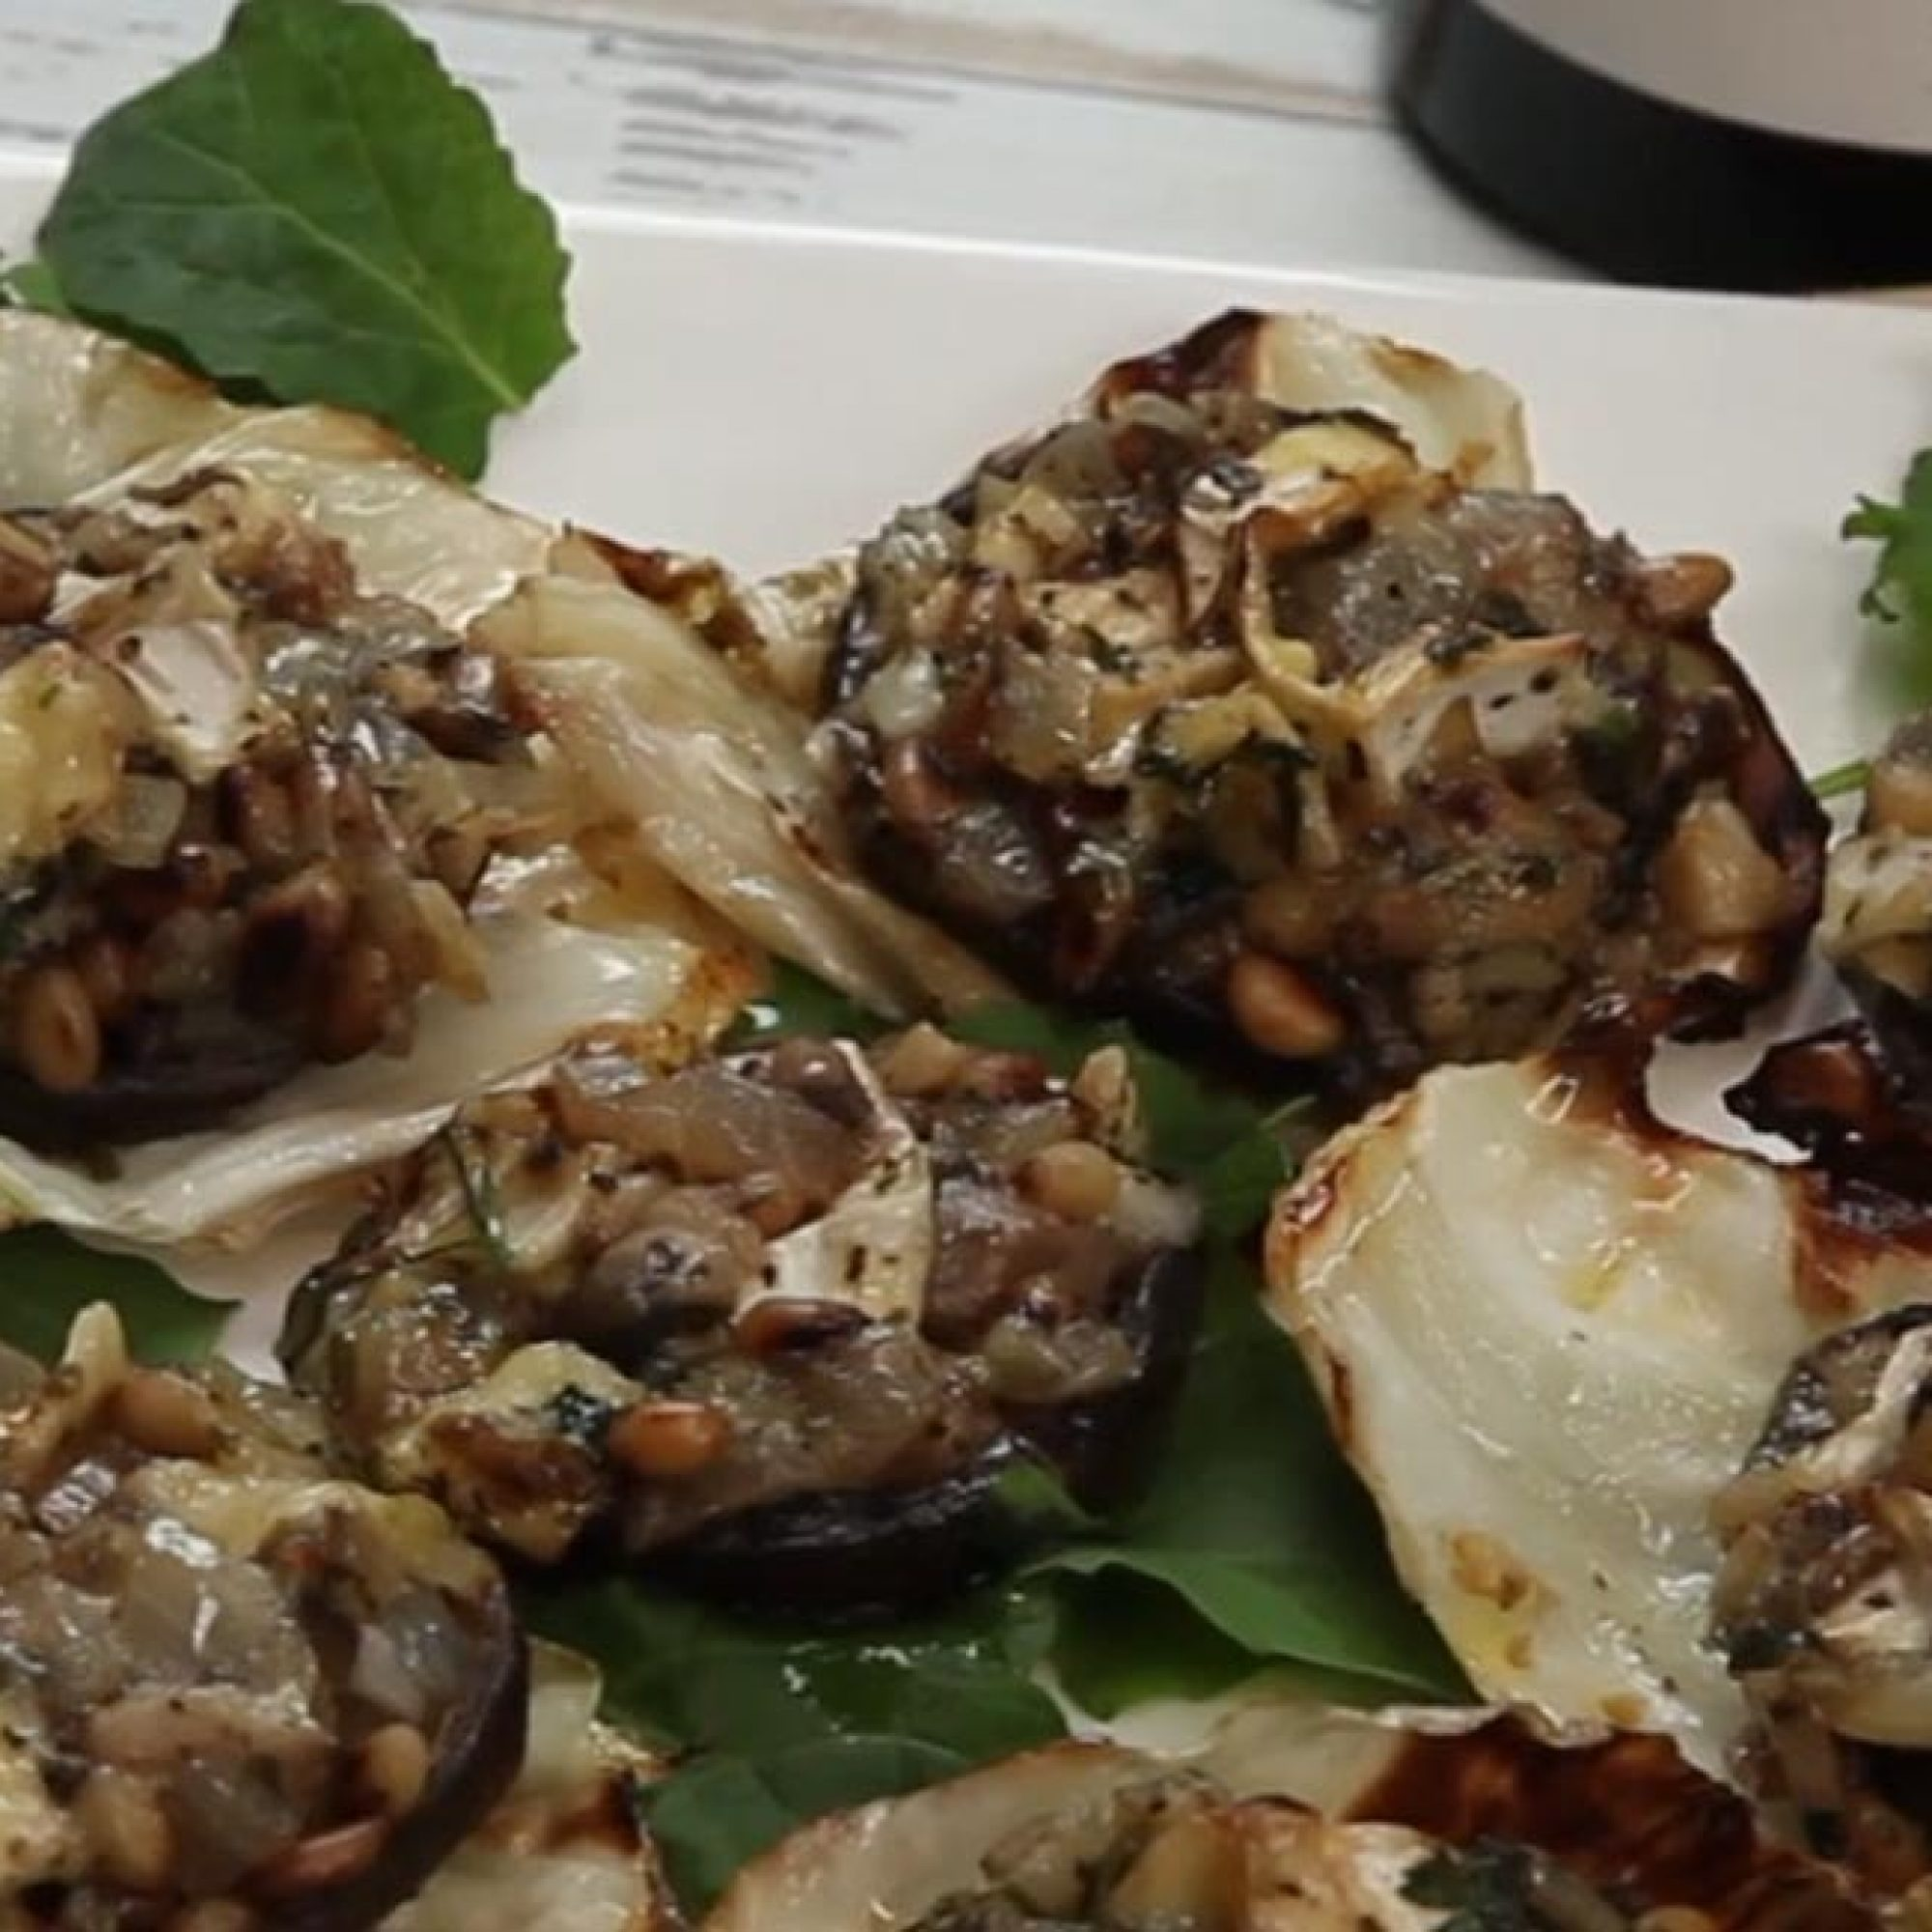 Stuffed Mushrooms with Brie